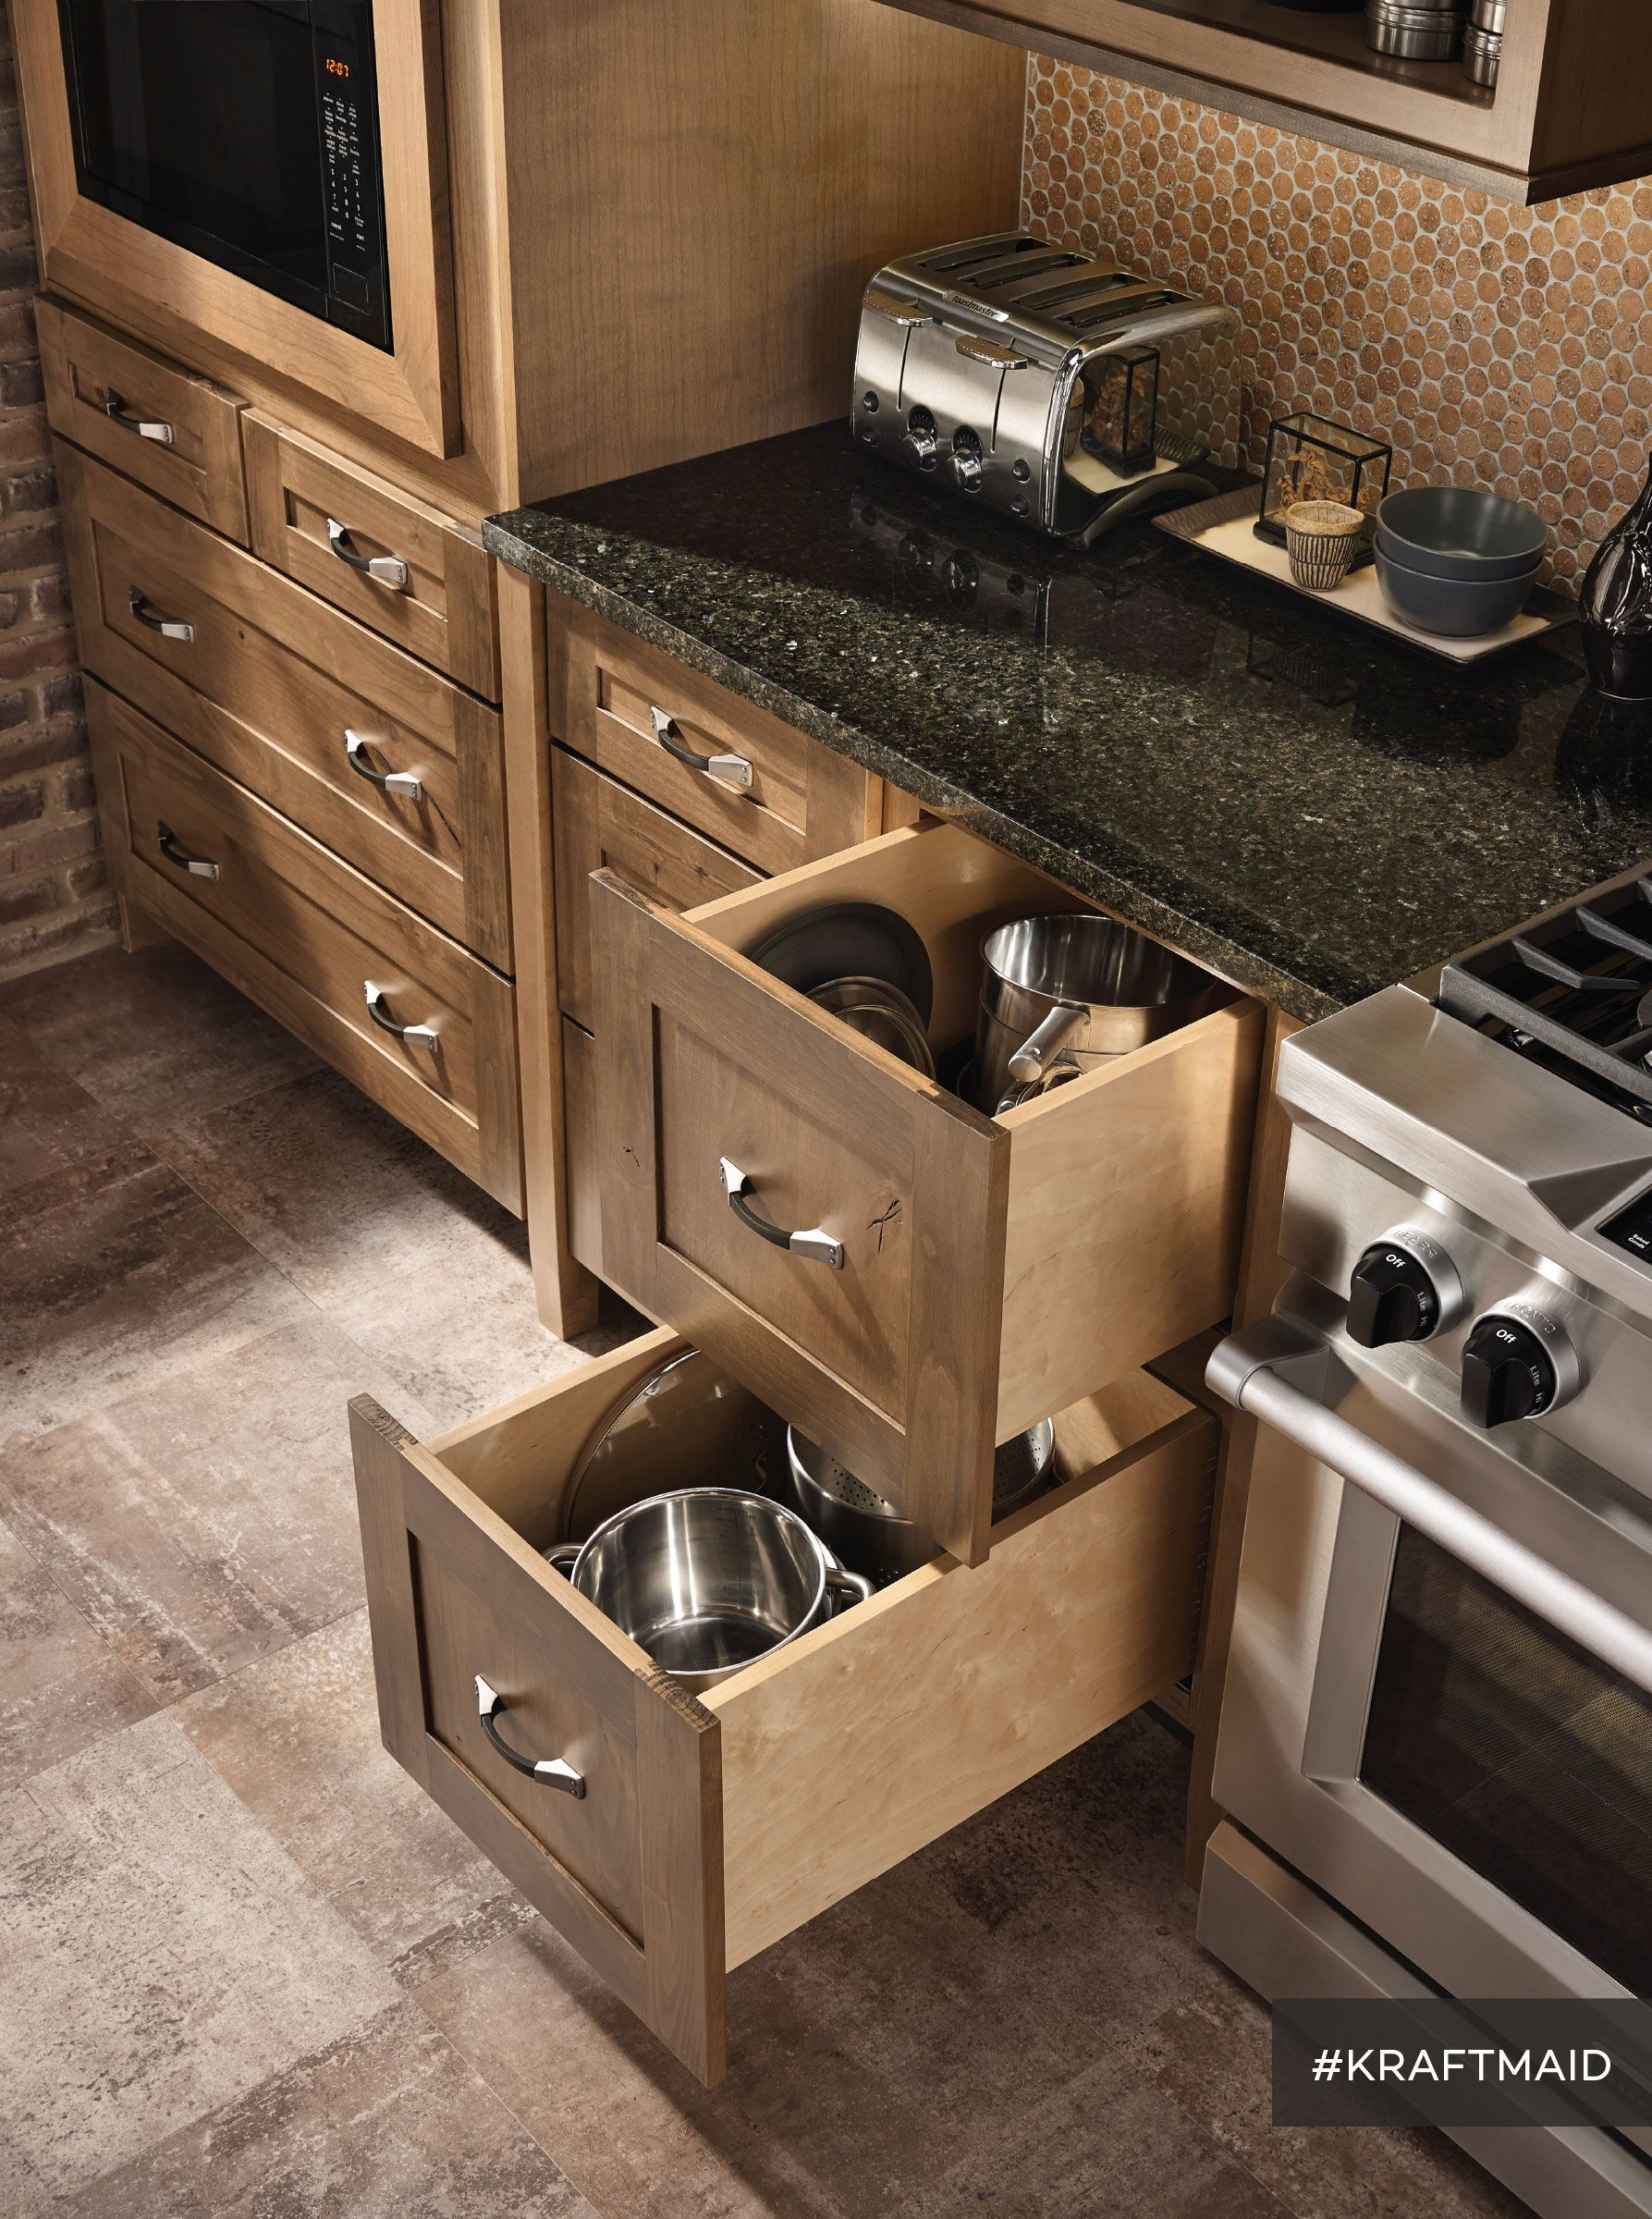 Easy access kitchen storage for big pots and pans—and since 90 lb